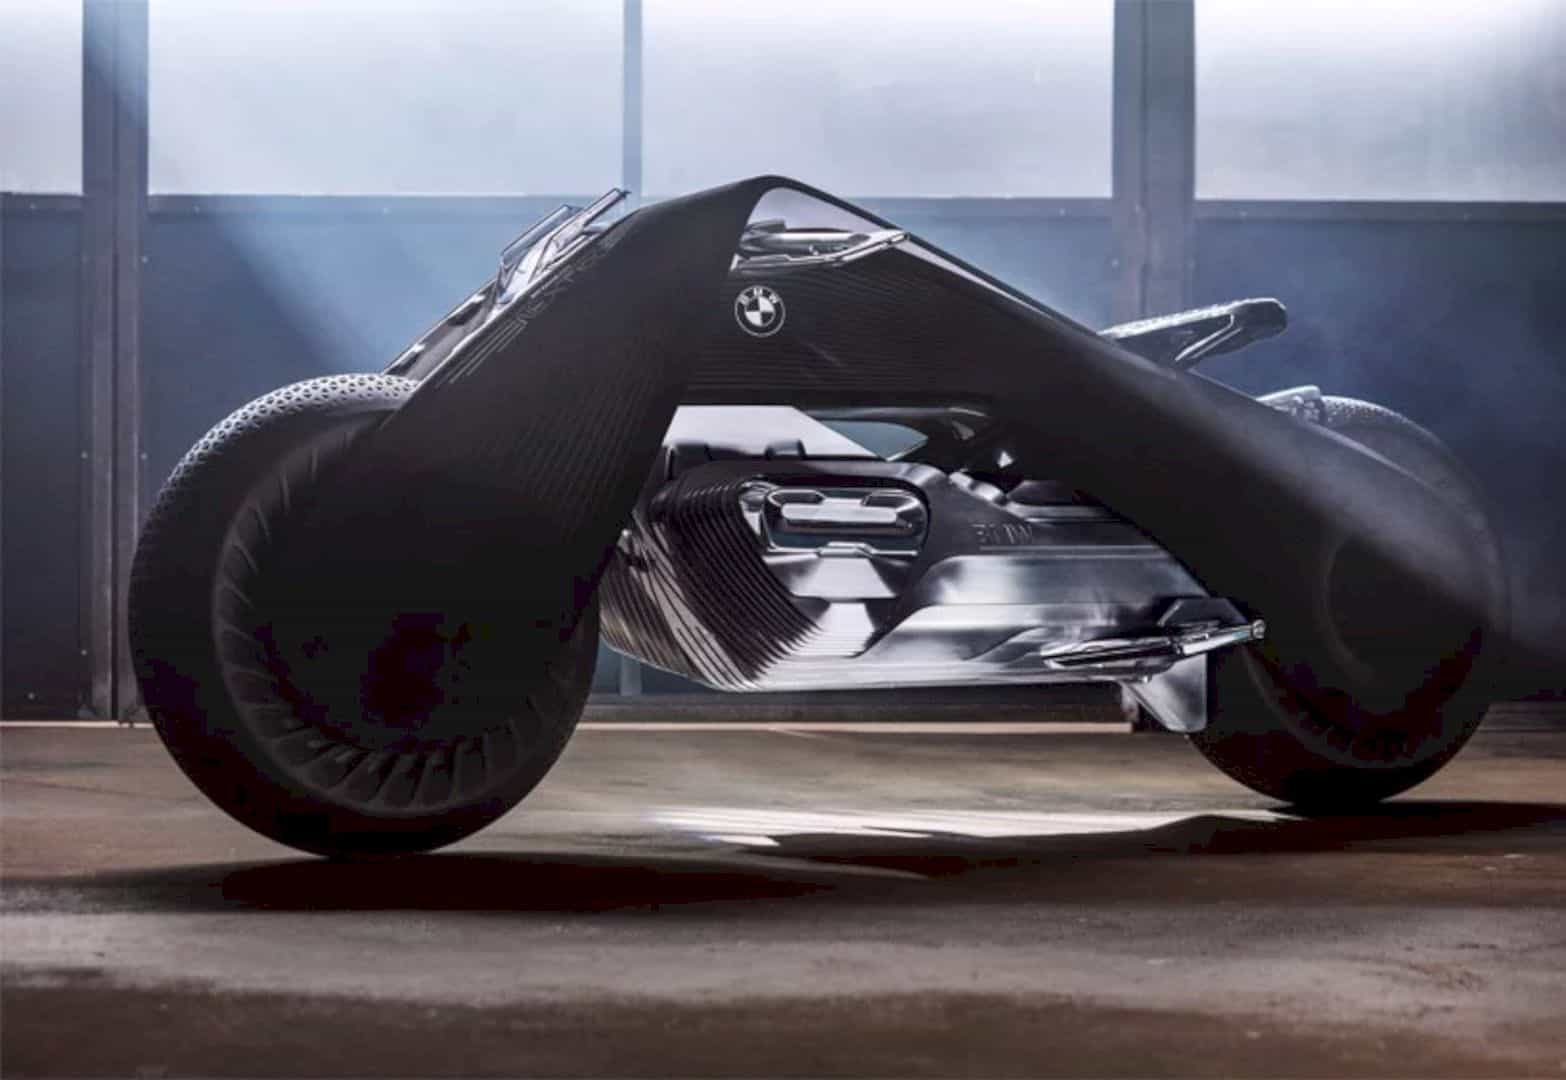 The Bmw Vision Next 100 Concept Motorcycle 5